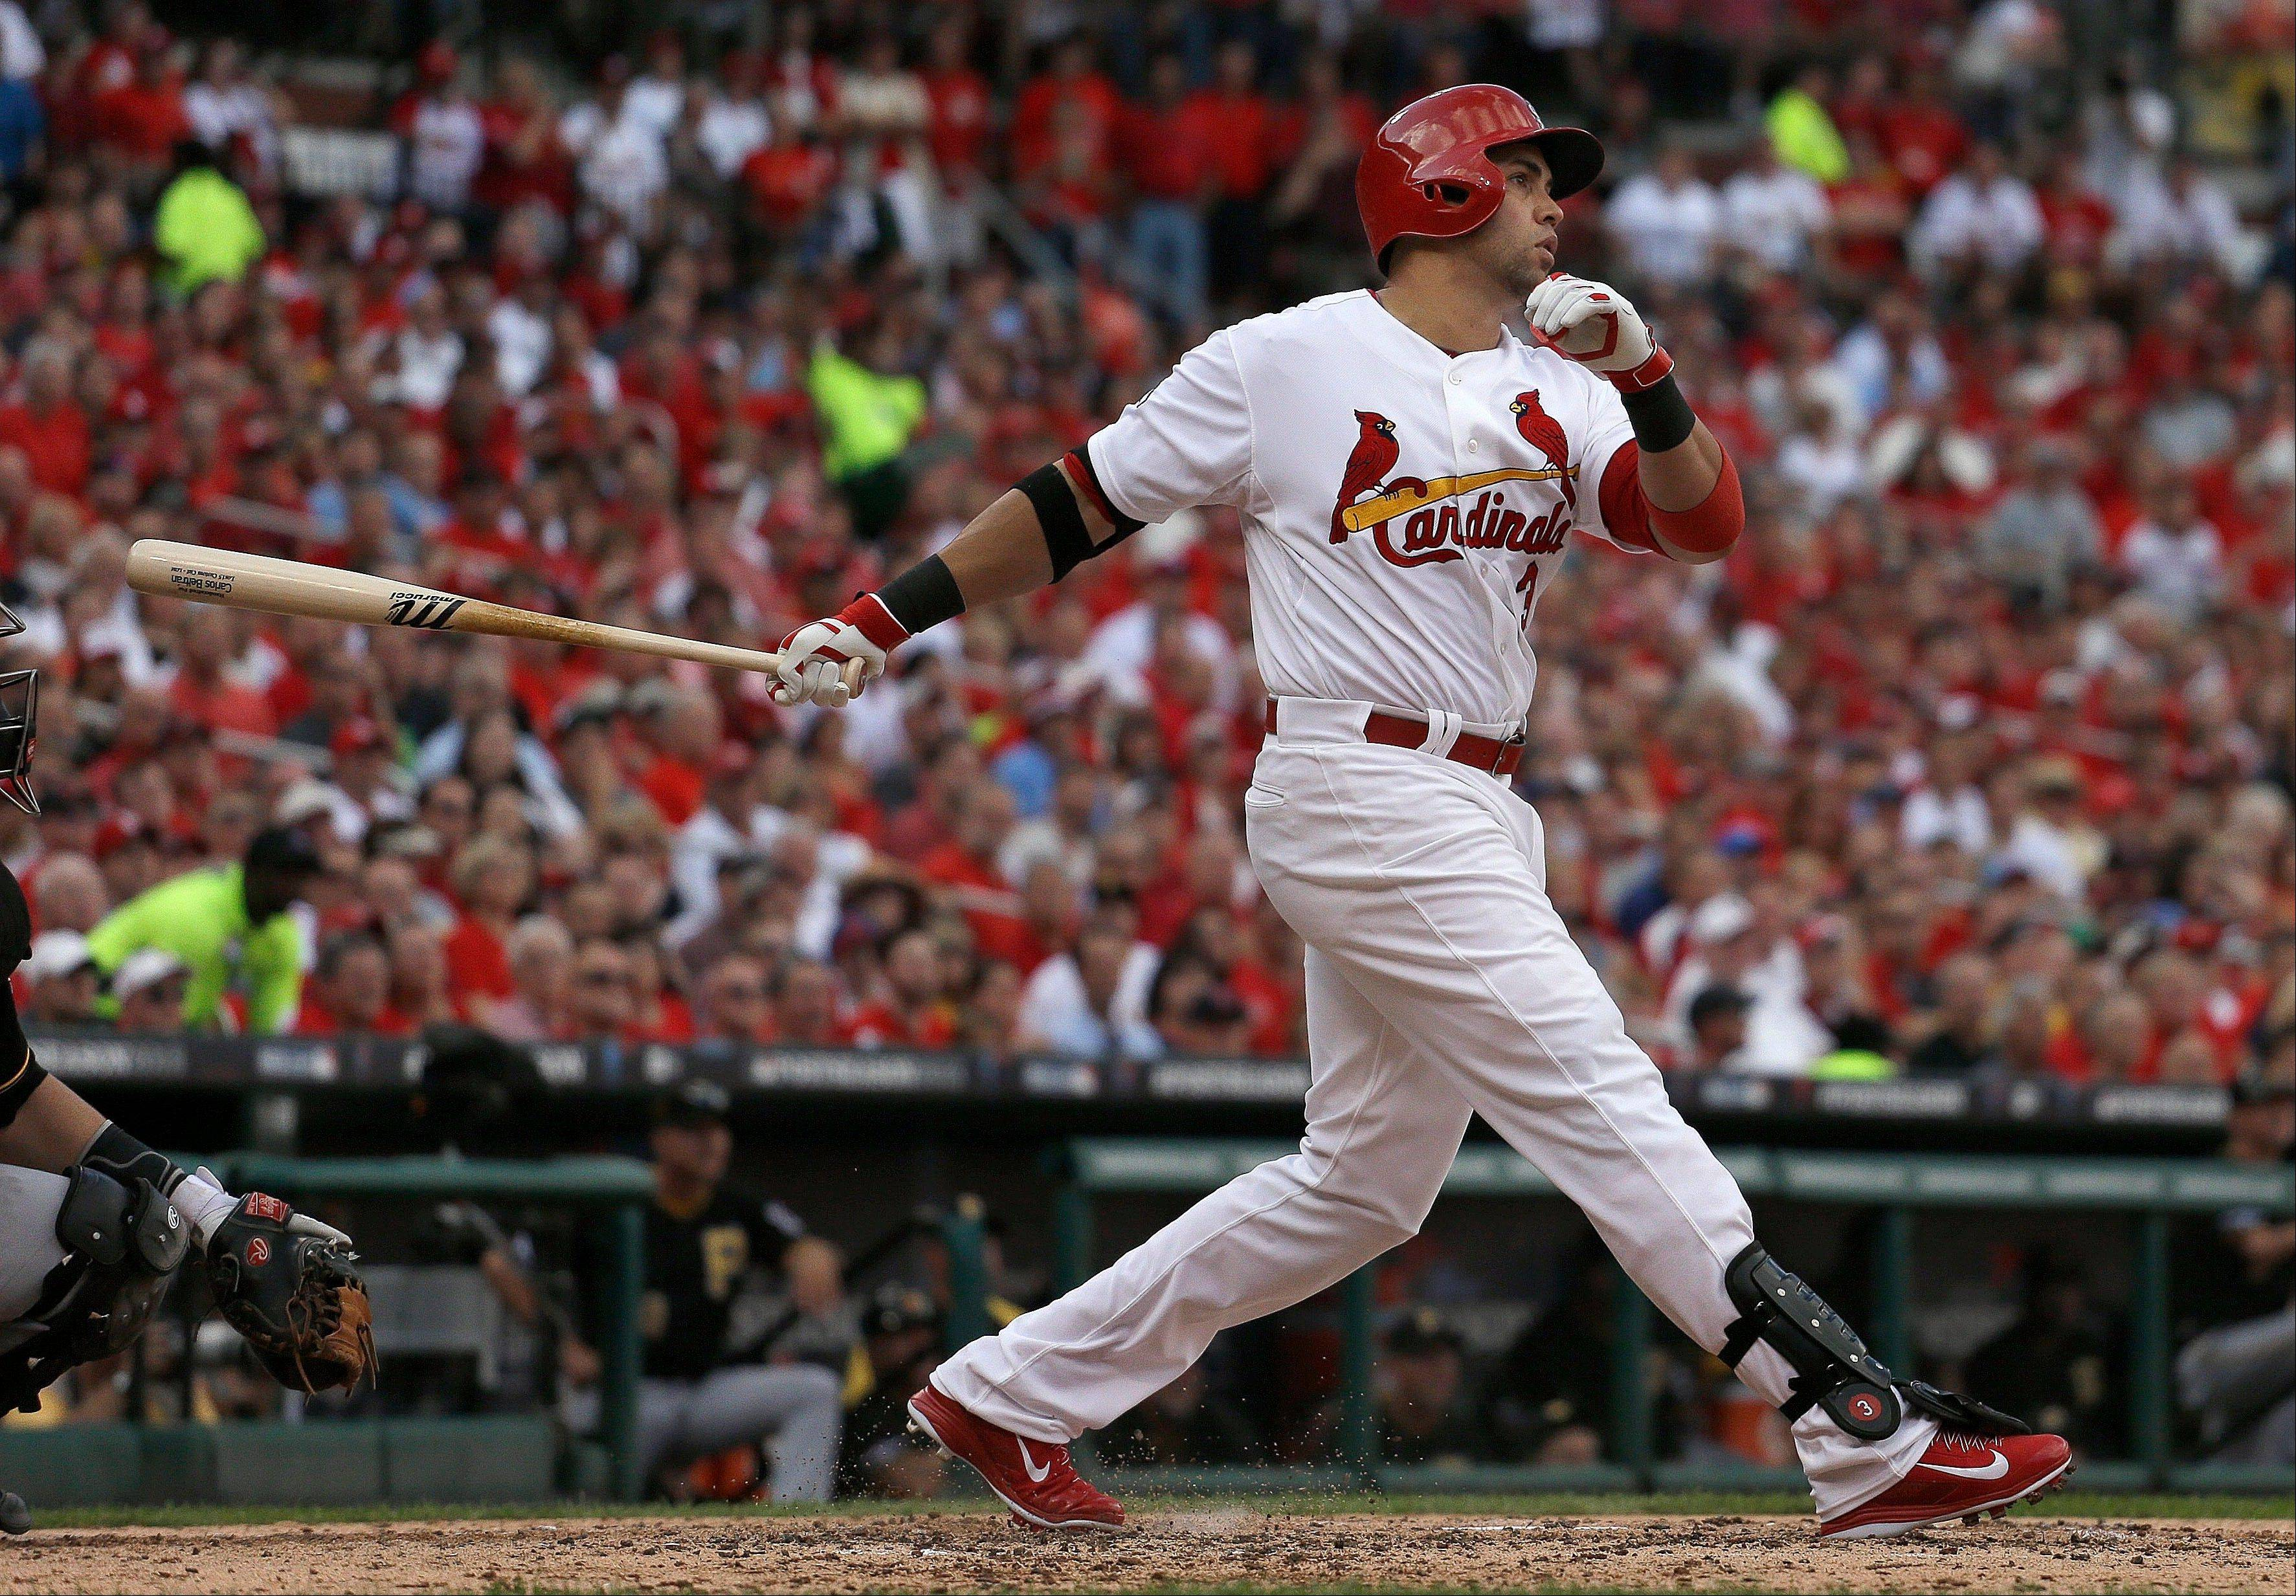 St. Louis Cardinals' Carlos Beltran follows through on a three-run home run against the Pittsburgh Pirates in the third inning of Game 1 of baseball's National League division series, Thursday, Oct. 3, 2013, in St. Louis. (AP Photo/Jeff Roberson)